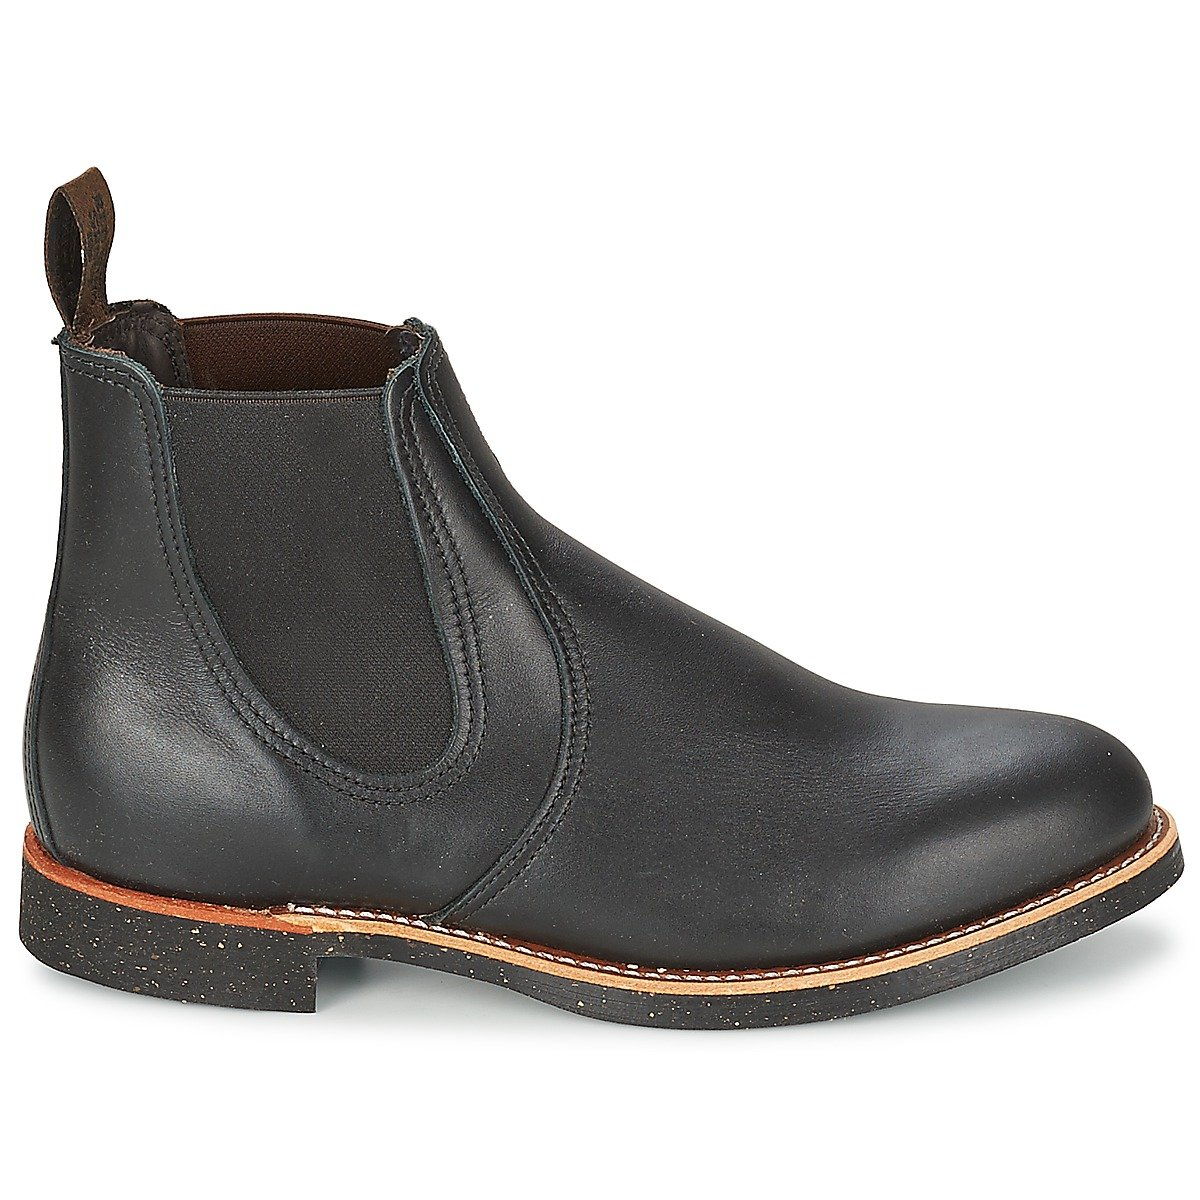 Rot Wing Wing Wing Mens Rancher Chelsea 8200 schwarz Leather Stiefel 41 EU 28b879